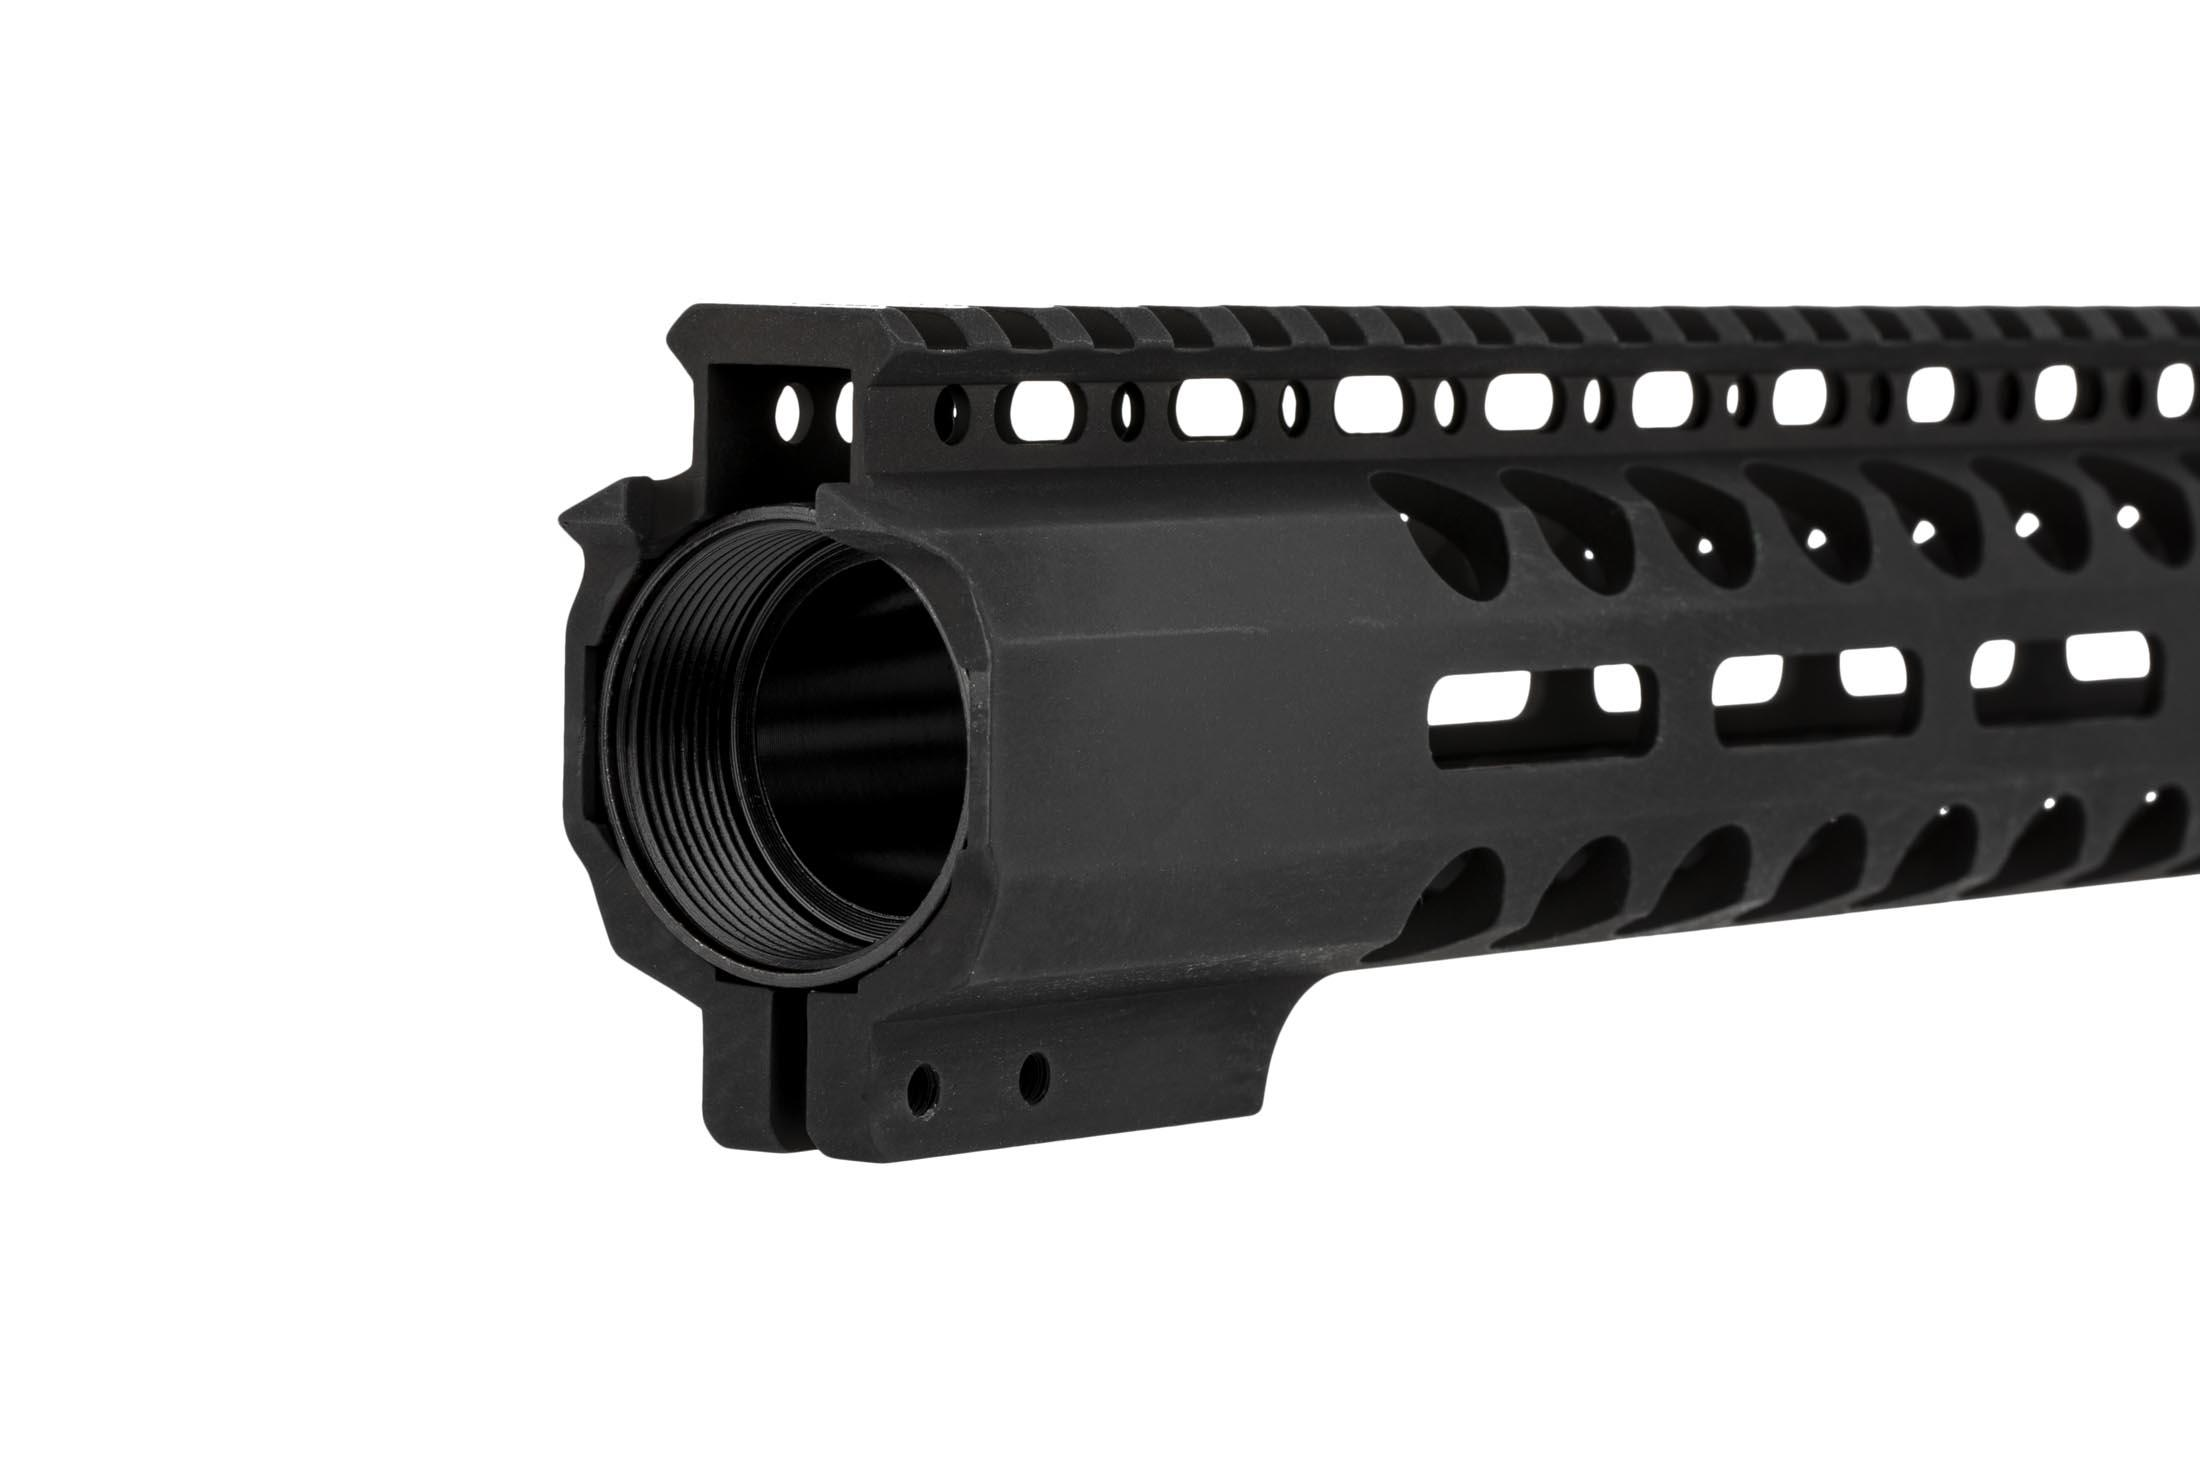 Radical Firearms 3rd Gen 10 M-LOK free float Primary Arms Exclusive handguard for the AR-15 with steel barrel nut and full length top rail